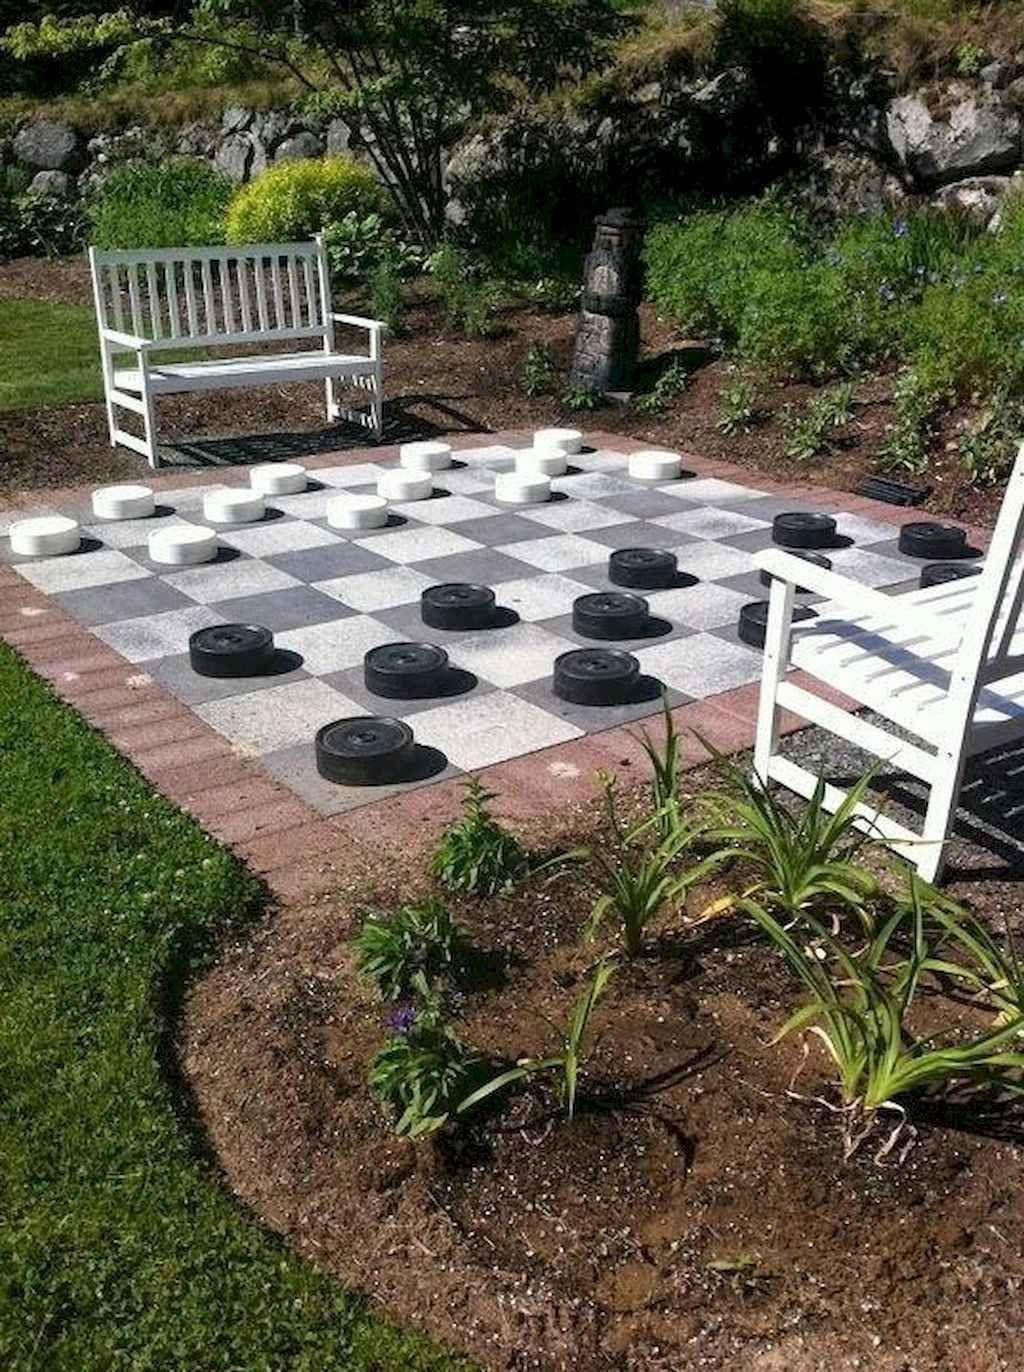 50 DIY Playground Project Ideas for Backyard Landscaping